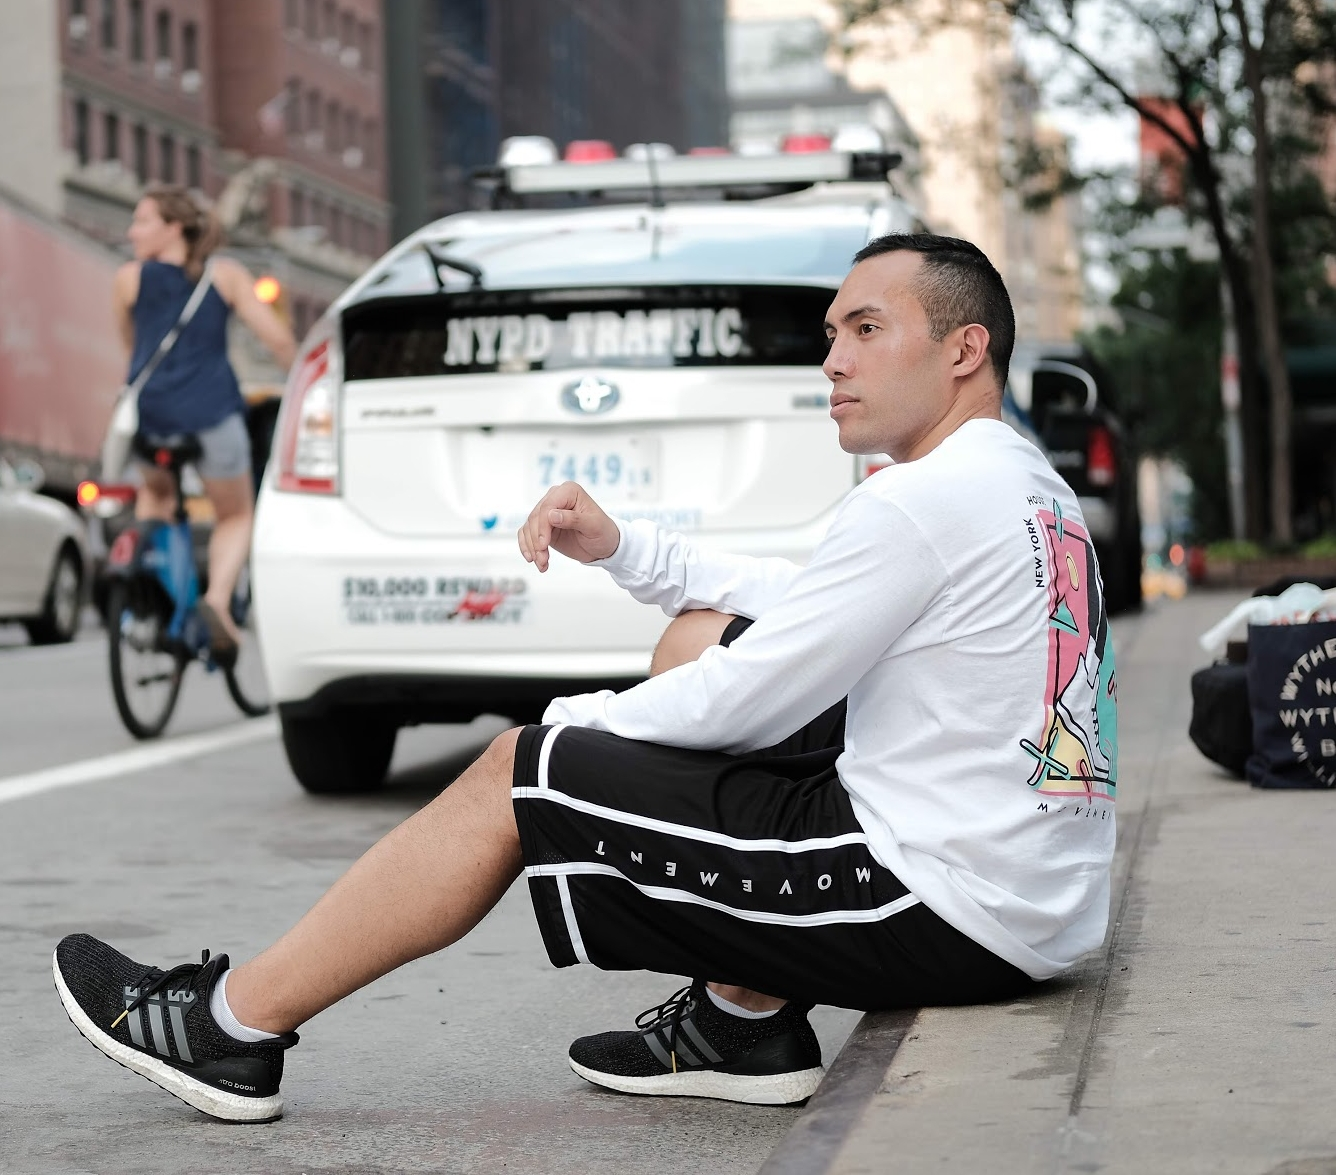 HoM x FoF Black & White Shorts - We are throwing it back to the 90s with this Summer '18 Collection x Collaboration with Friend of a Friend Studios! Basketball shorts are relaxed fit. 'Movement' Logo on Black and White Basketball shorts. Printed in New York City.Available in S, M, L.100% Polyester with mesh side-panelShipping Available.$40